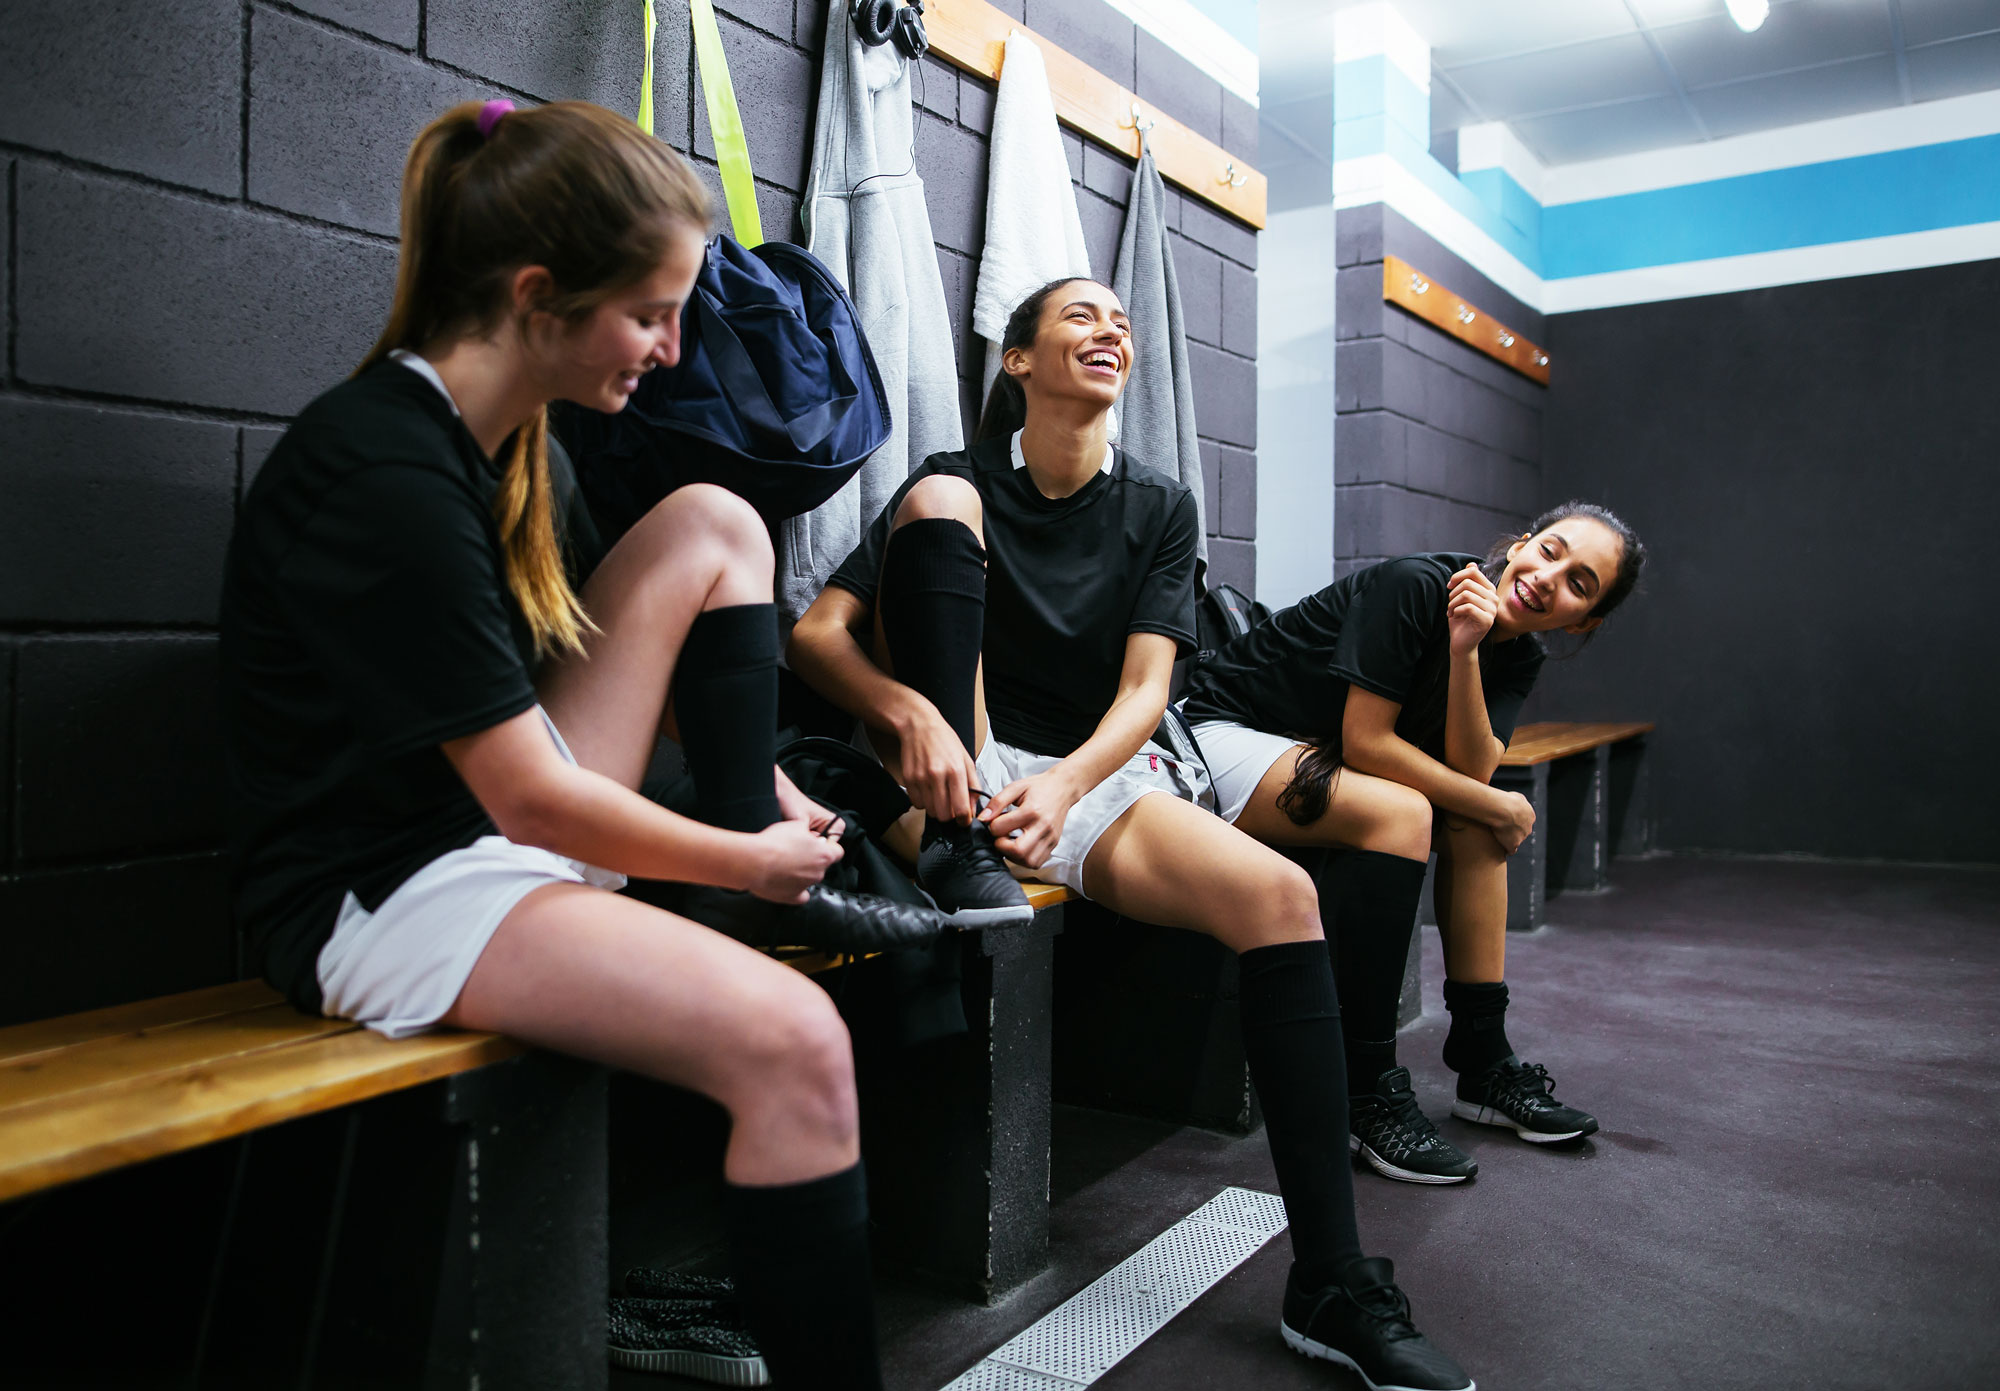 Three young athletes lacing up their shoes in the locker room